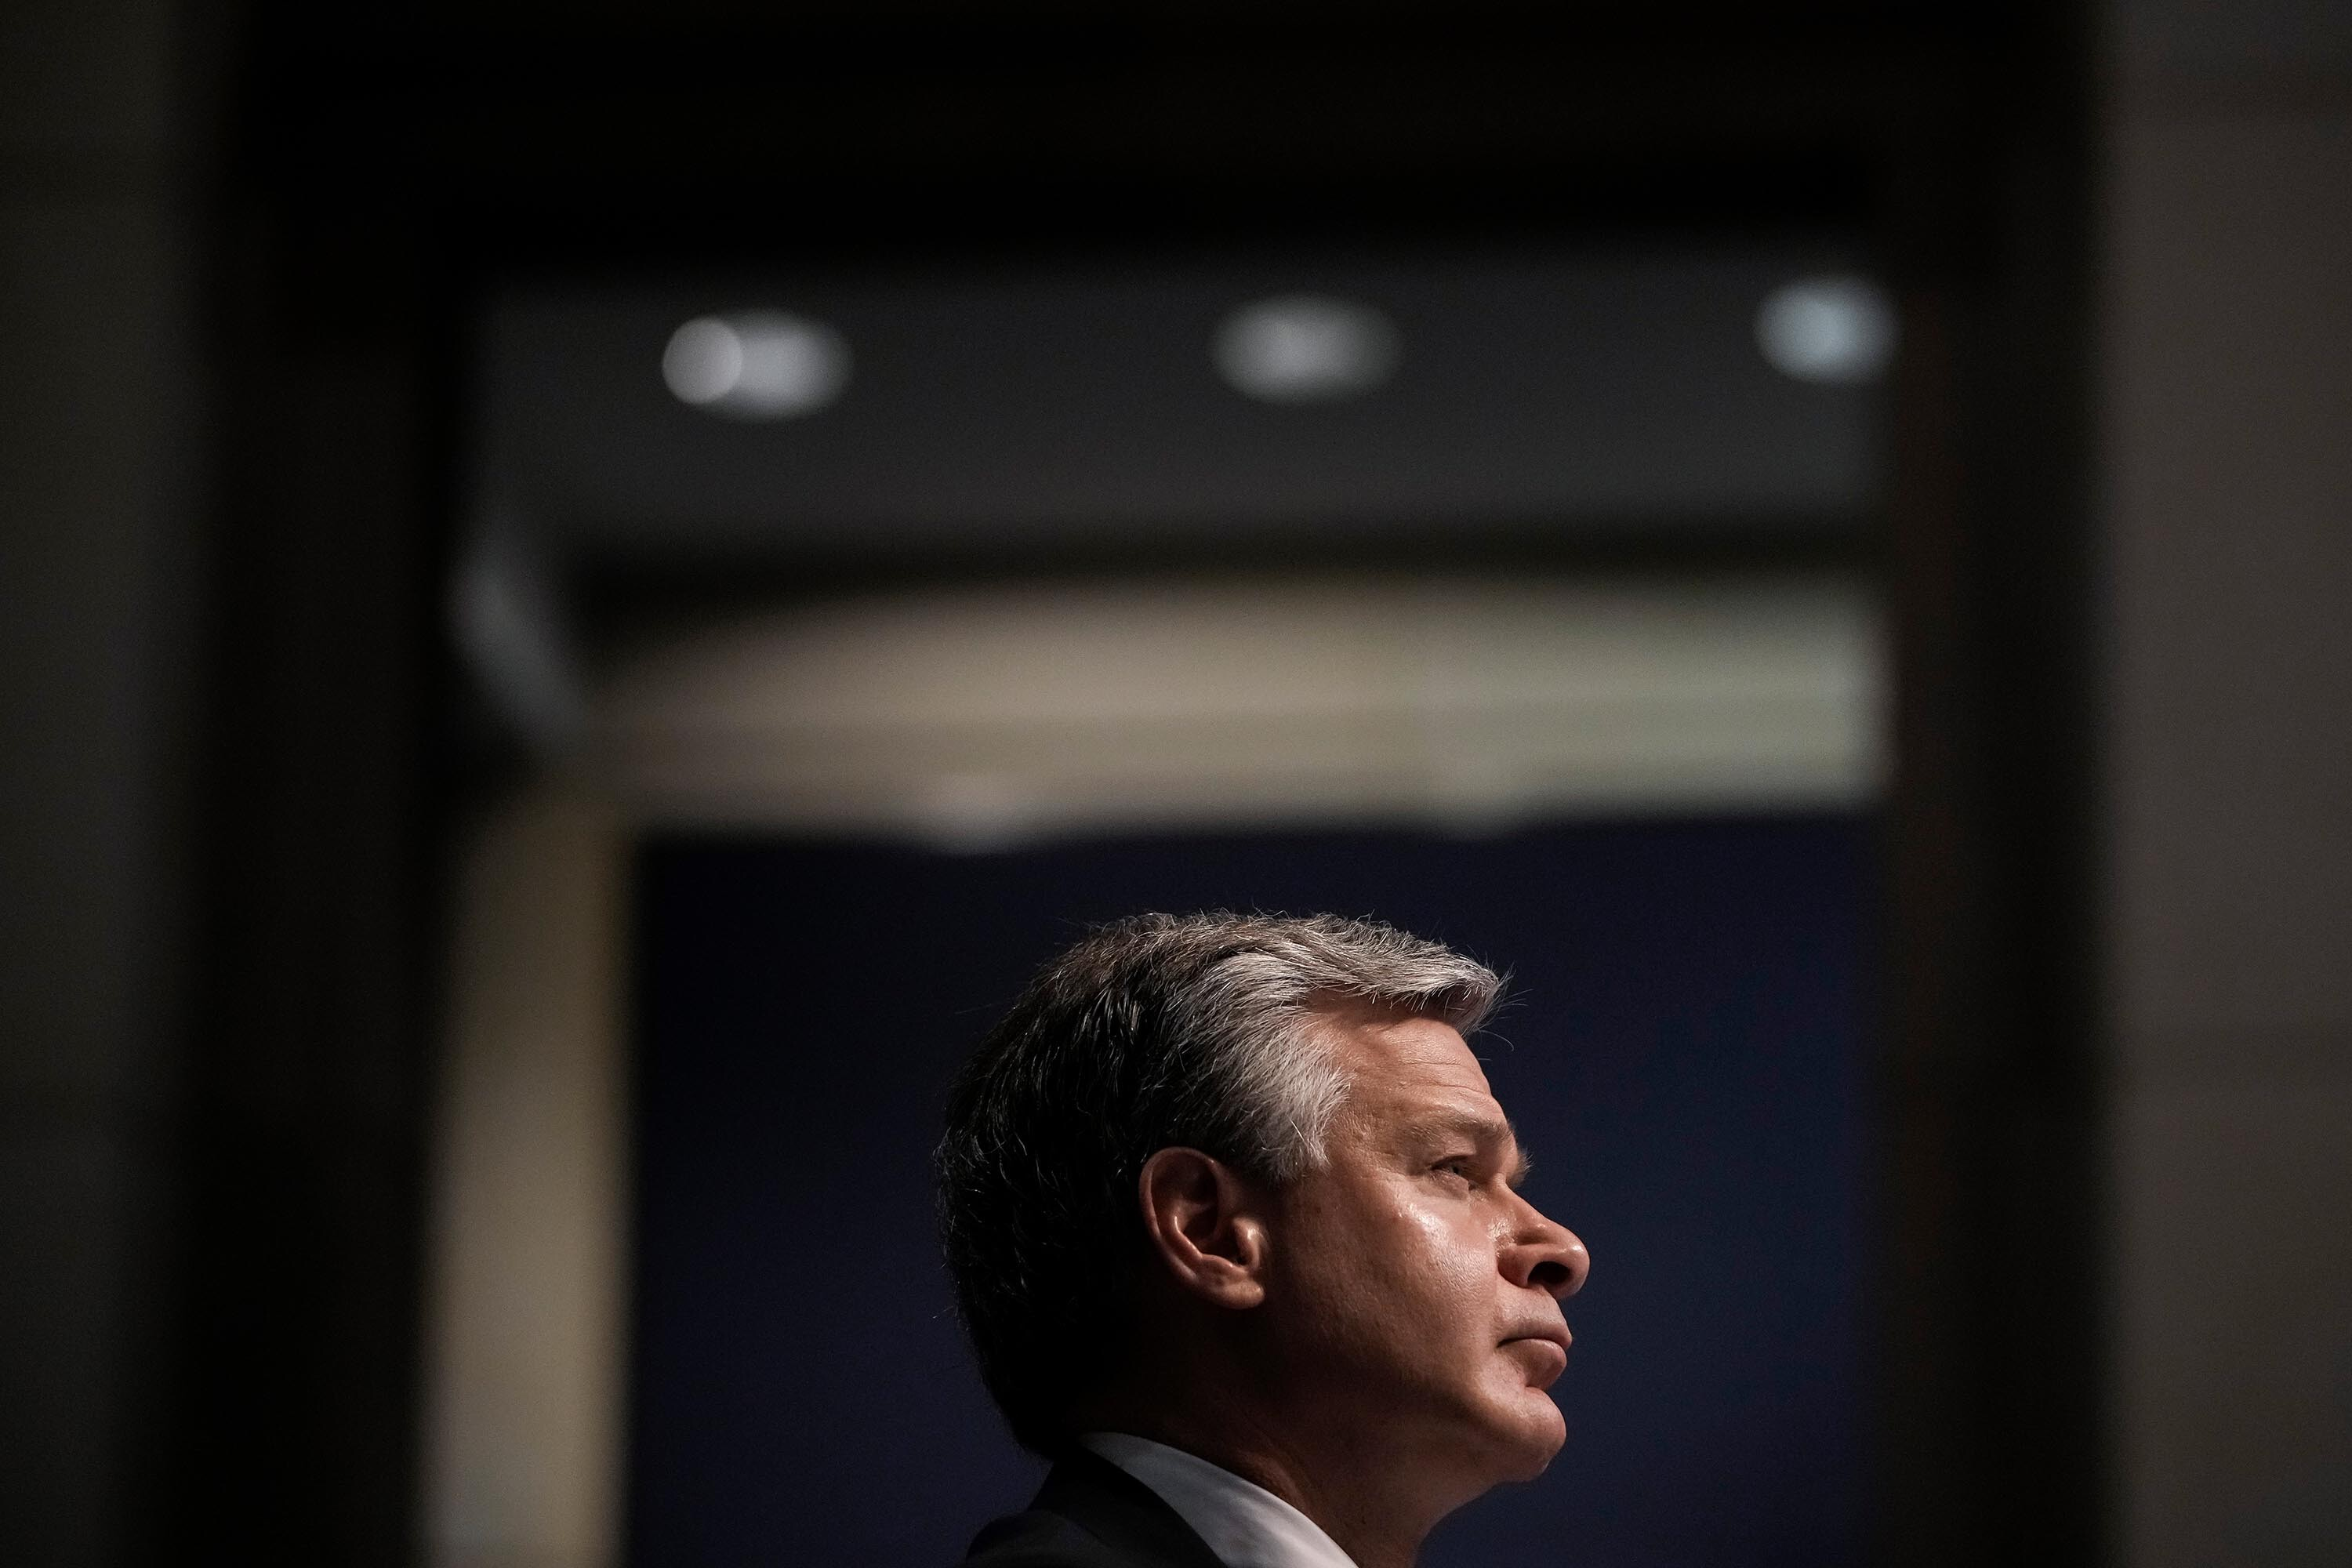 House lawmakers seek explanation from FBI's Wray over ransomware response